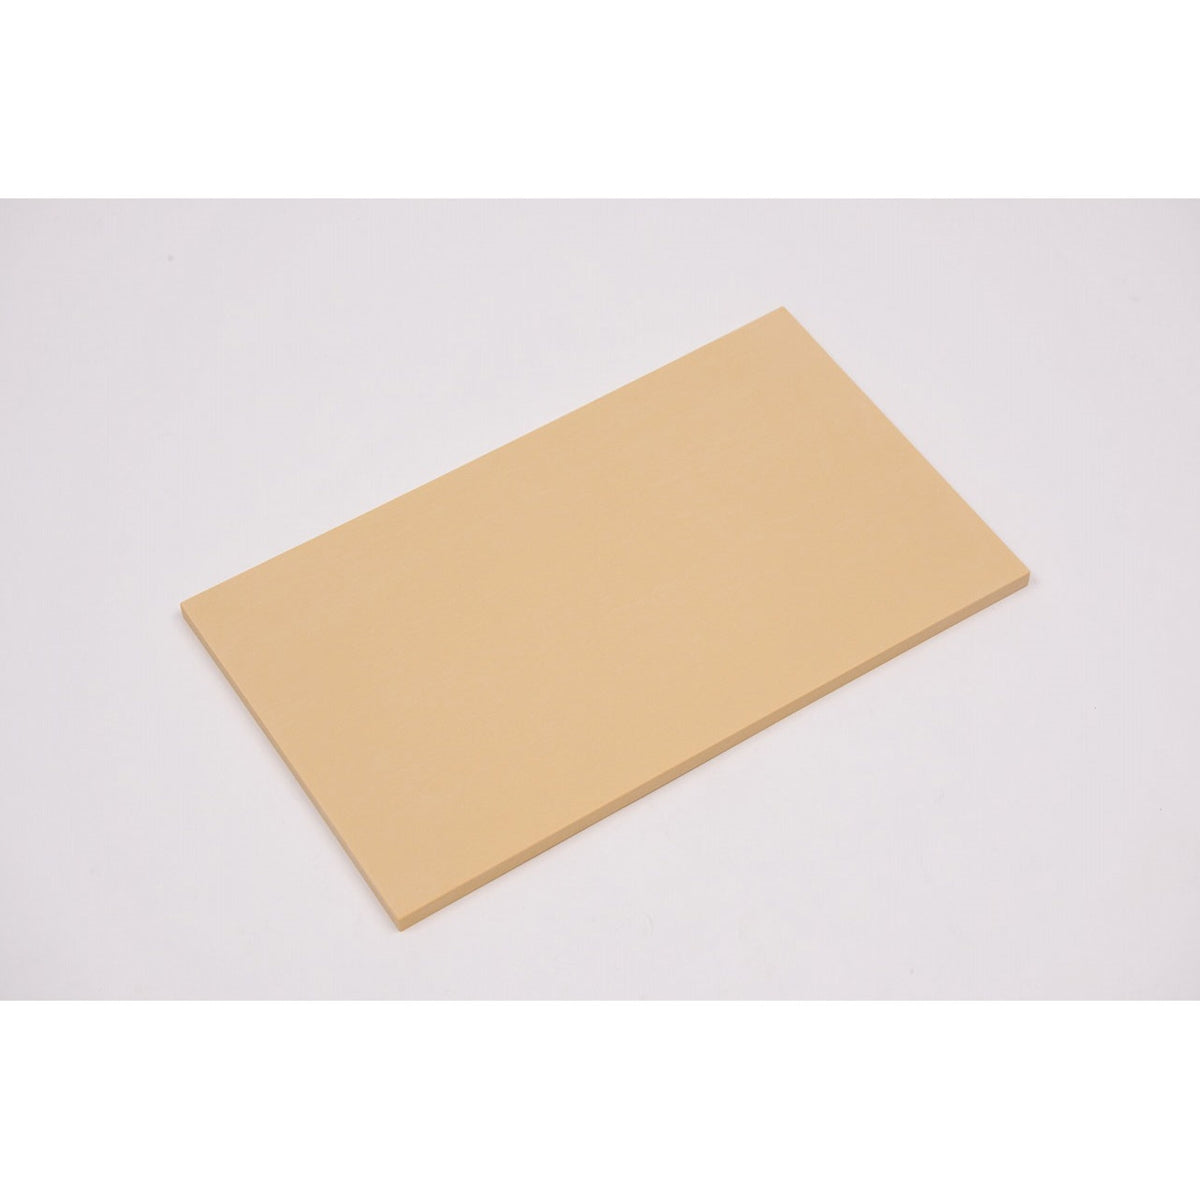 "Asahi Soft Cutting Board 0.25"" Thickness"